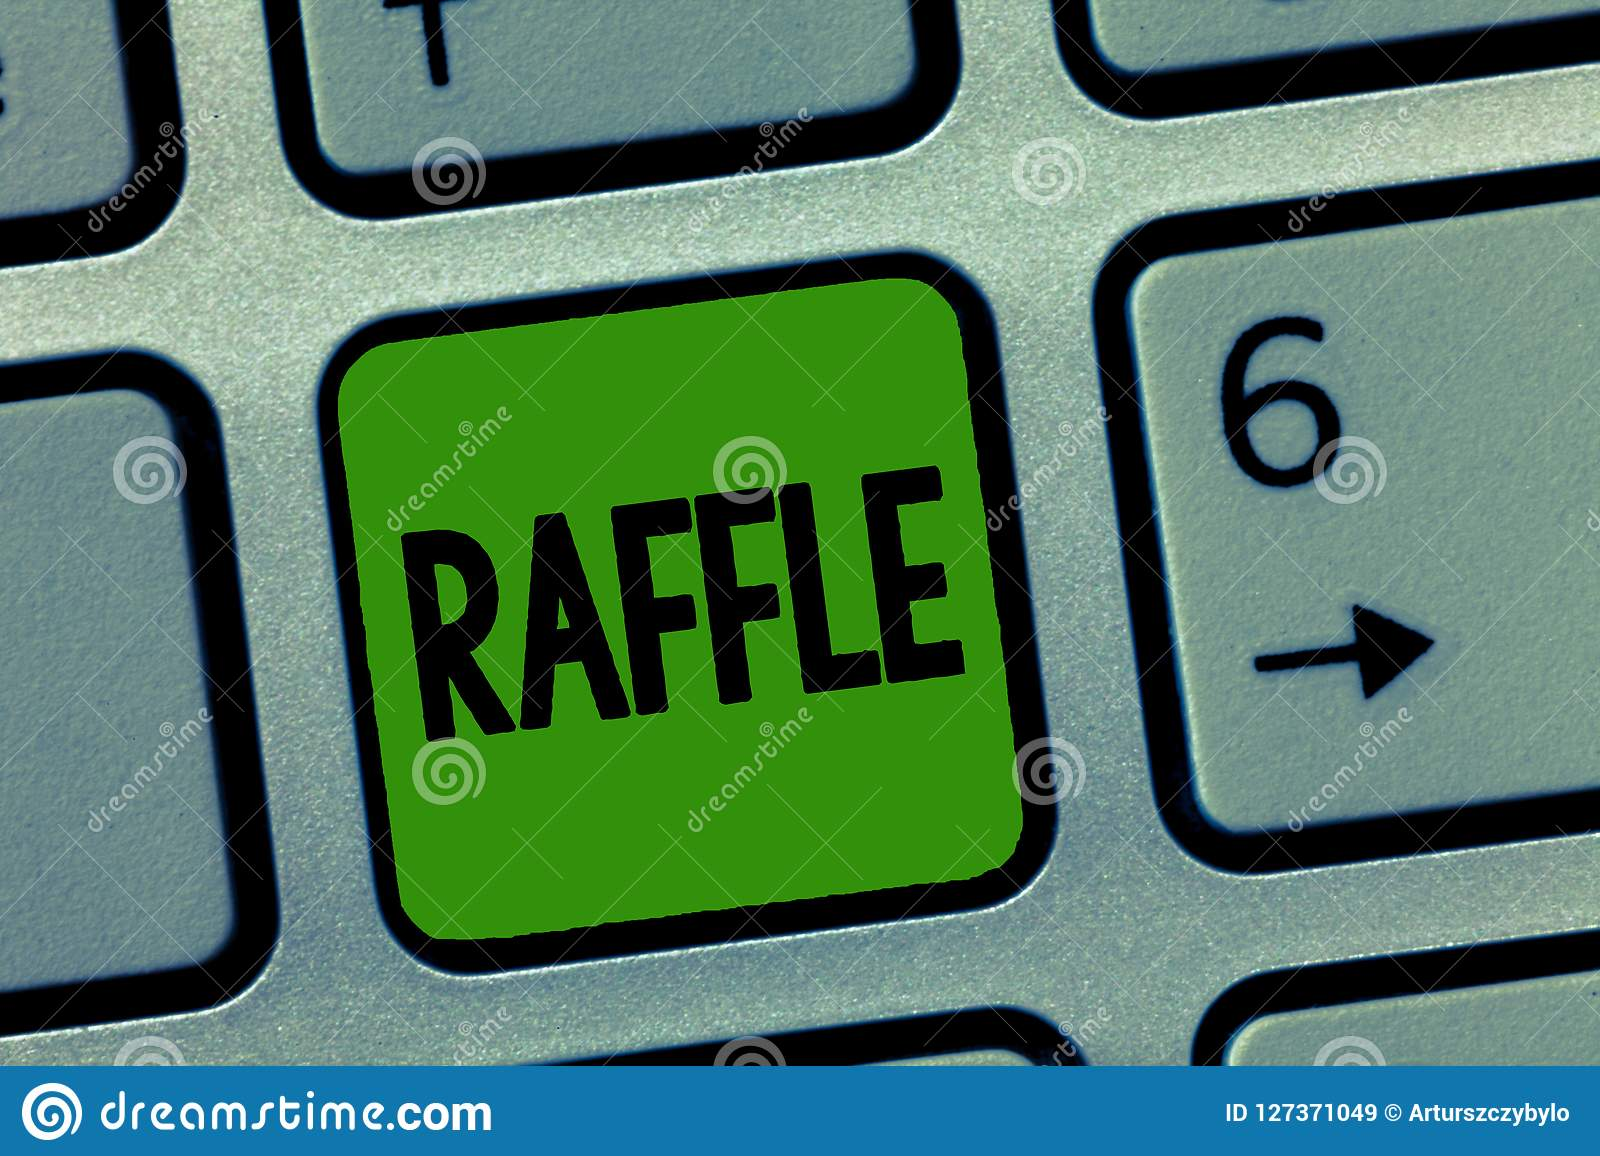 handwriting text raffle concept meaning means of raising money by